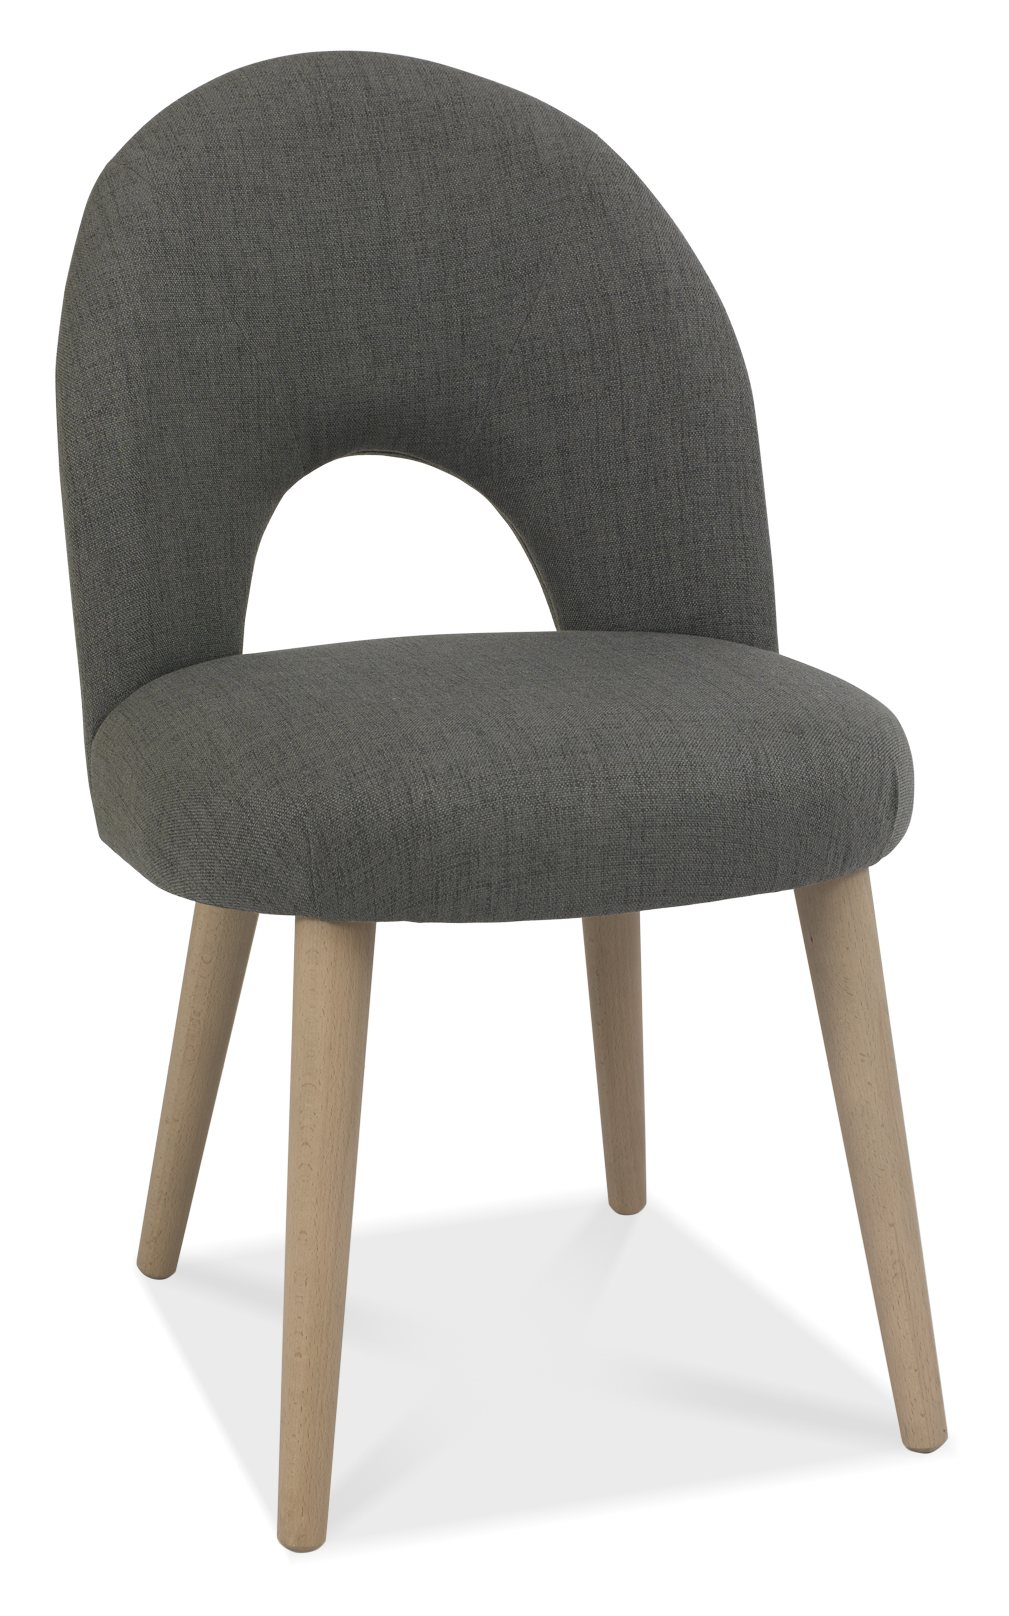 RETRO GREY FABRIC DINING CHAIR - FRONT DETAIL